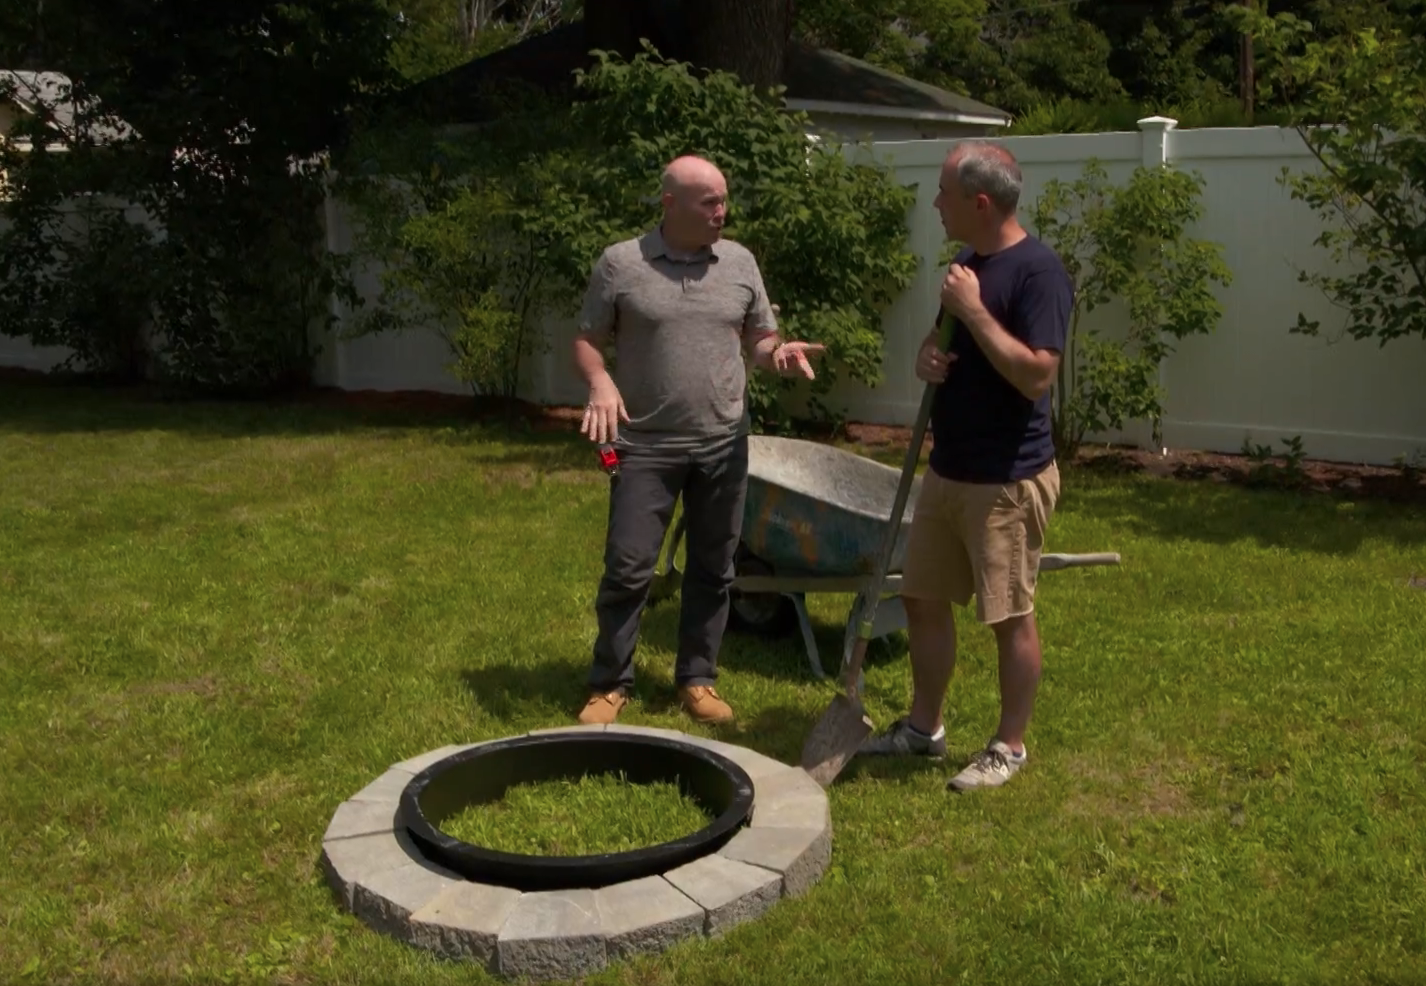 Building a fire pit from a kit